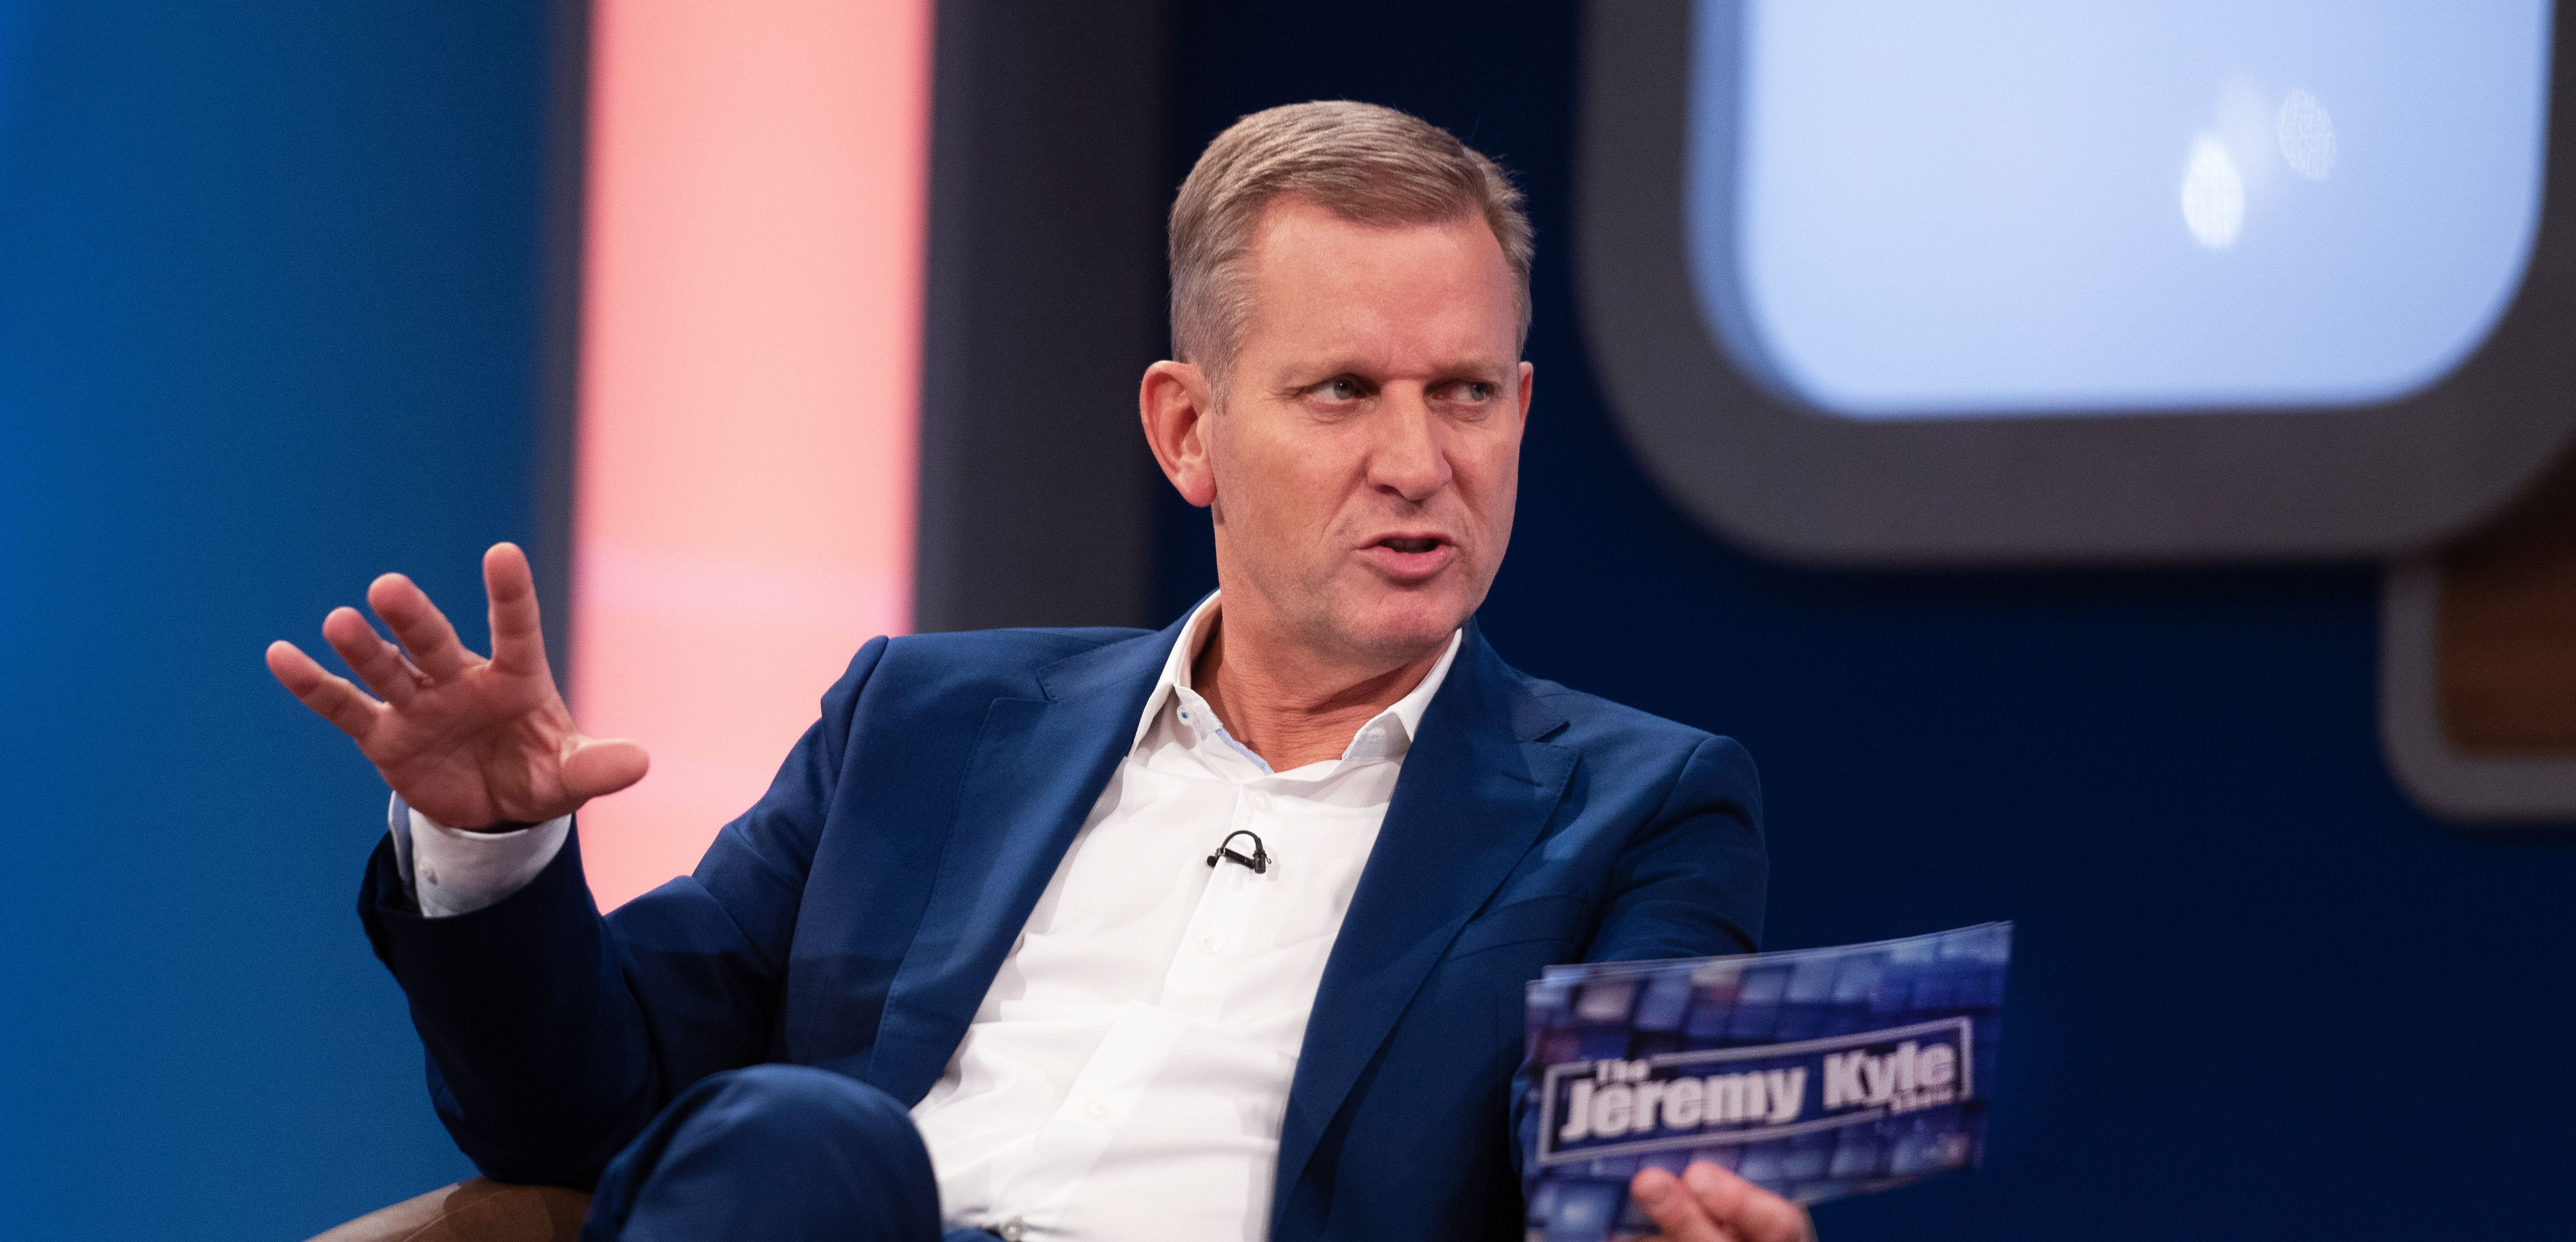 ITV FINALLY confirms The Jeremy Kyle Show replacement